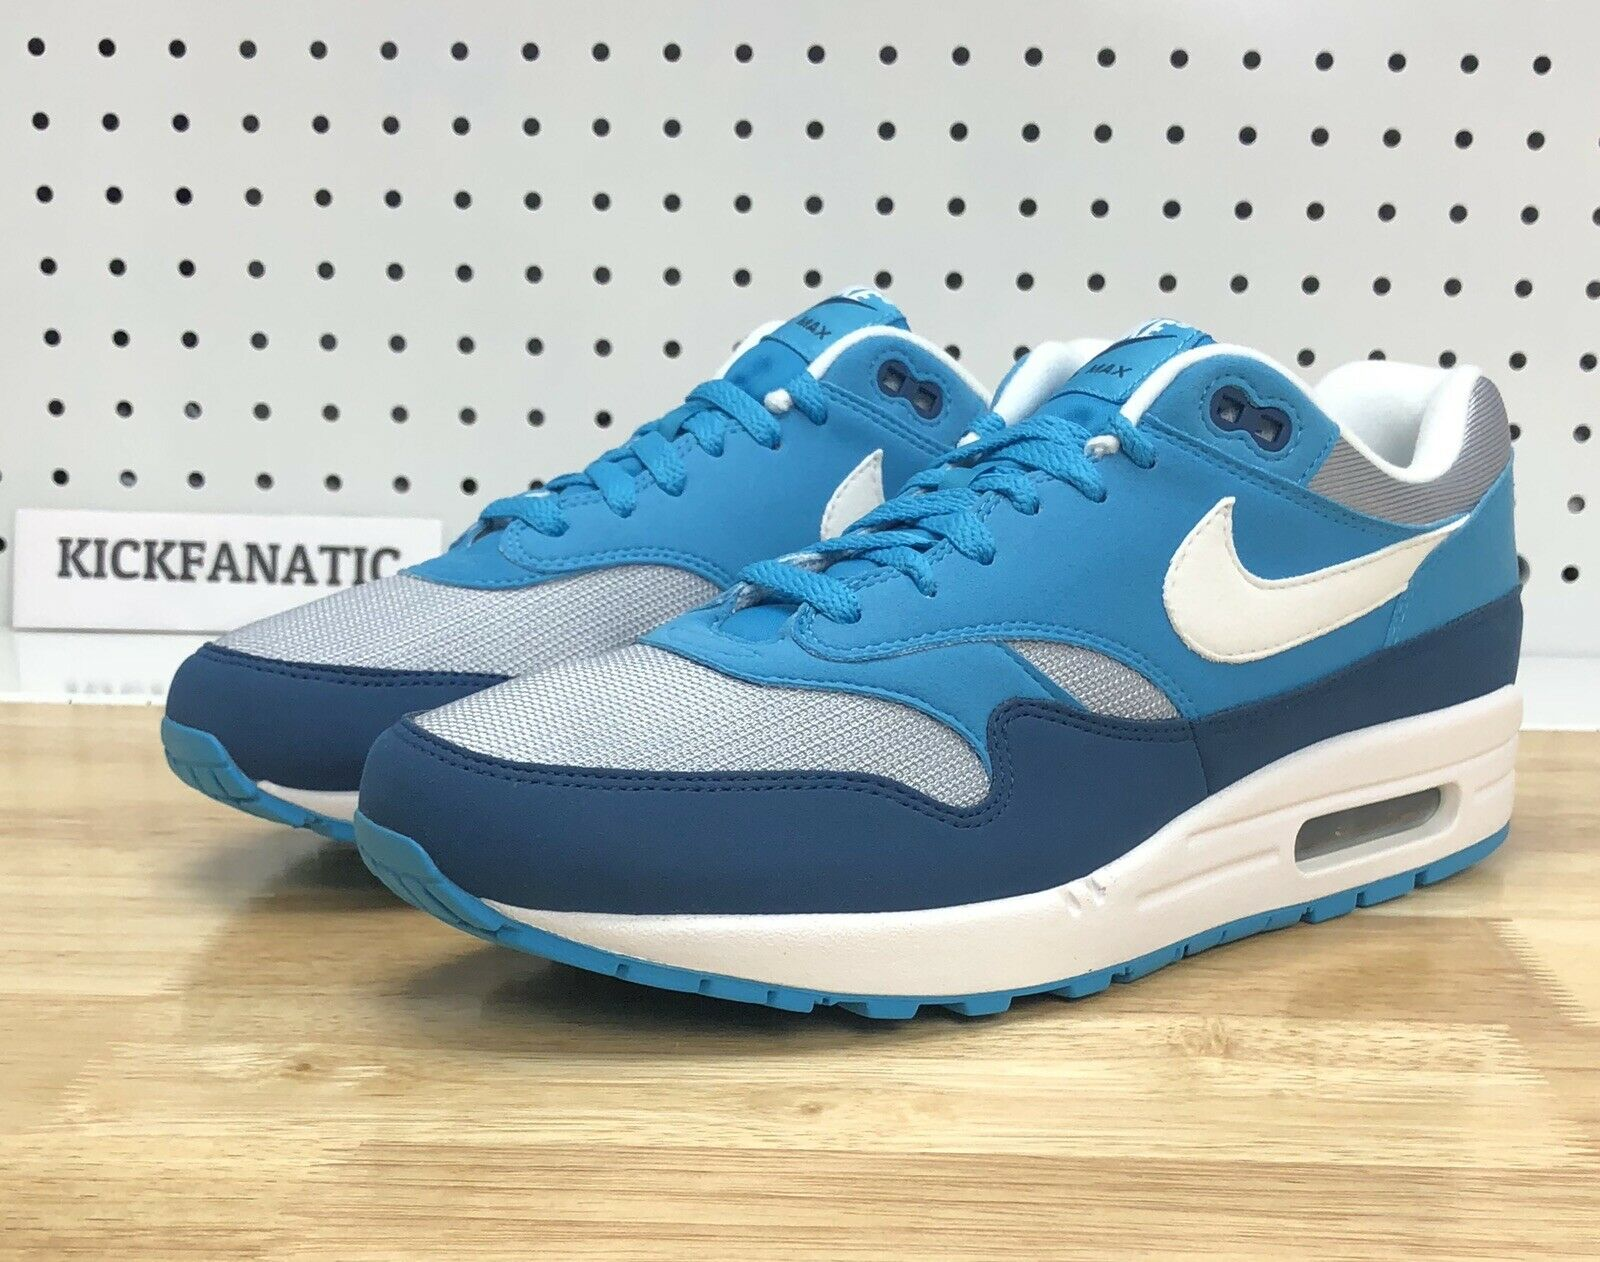 Nike Air Max 1 One Grey White Light bluee Running shoes 11.5 AH8145-002